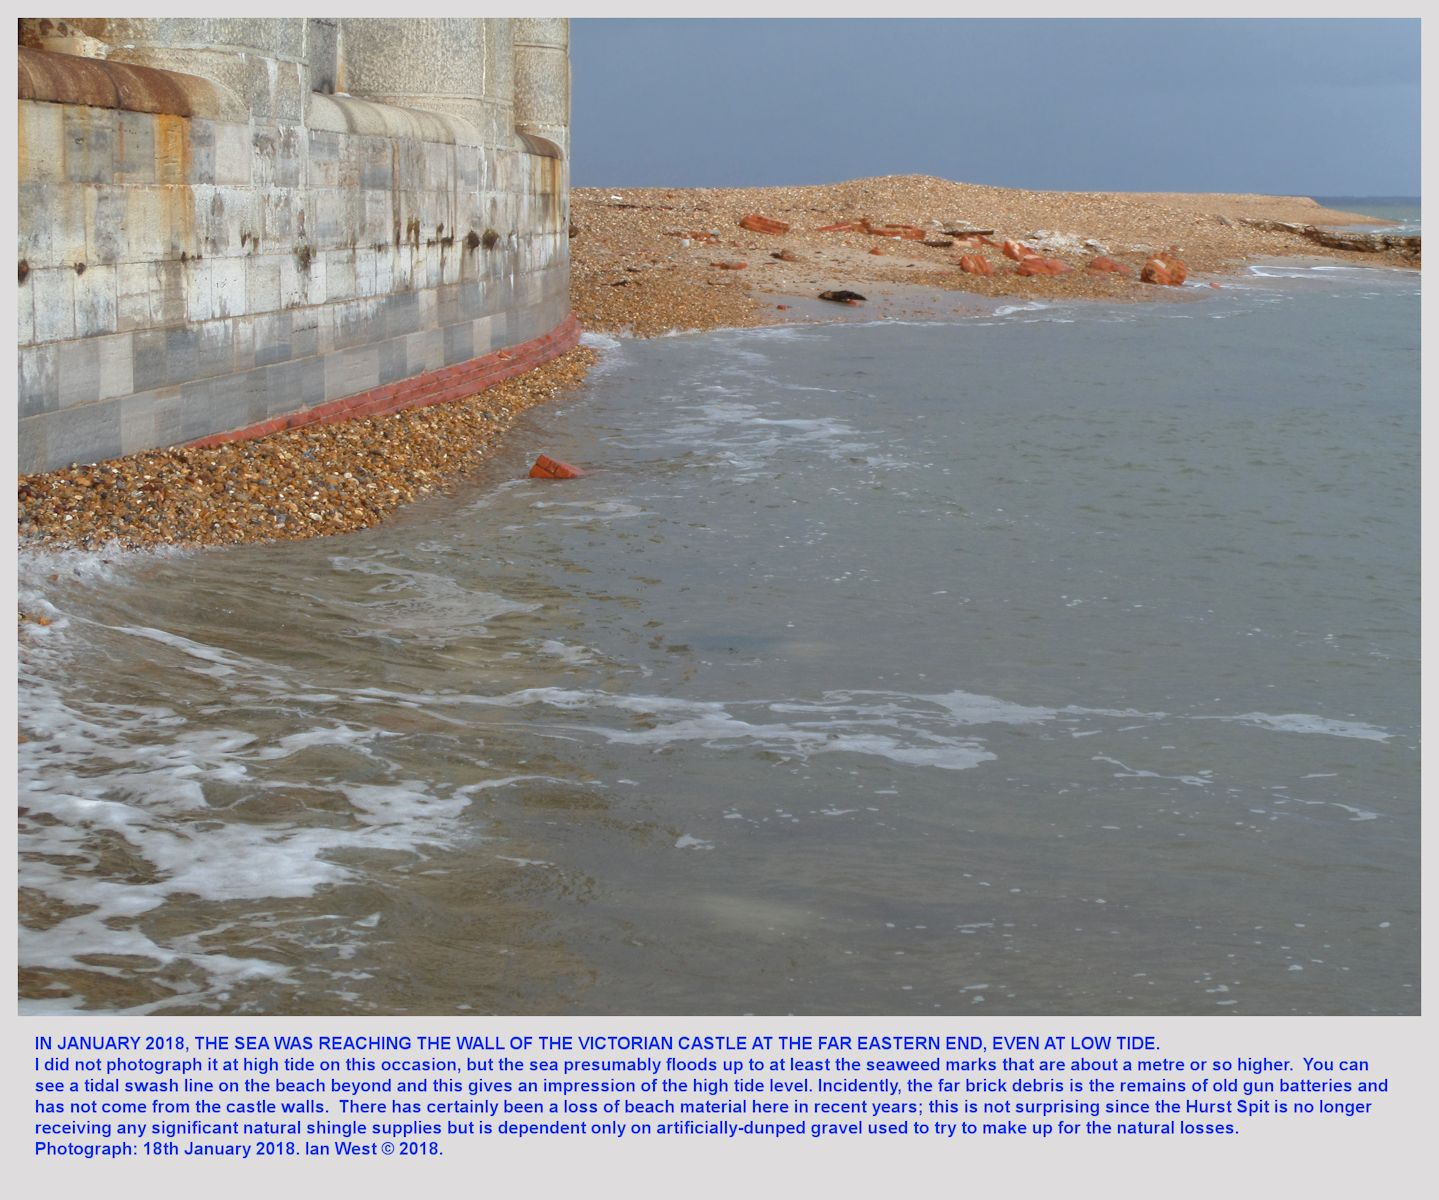 By 2018, the sea has caused erosion down to the red bricks beneath the heavy stone wall of the far end of Hurst castle on Hurst Spit